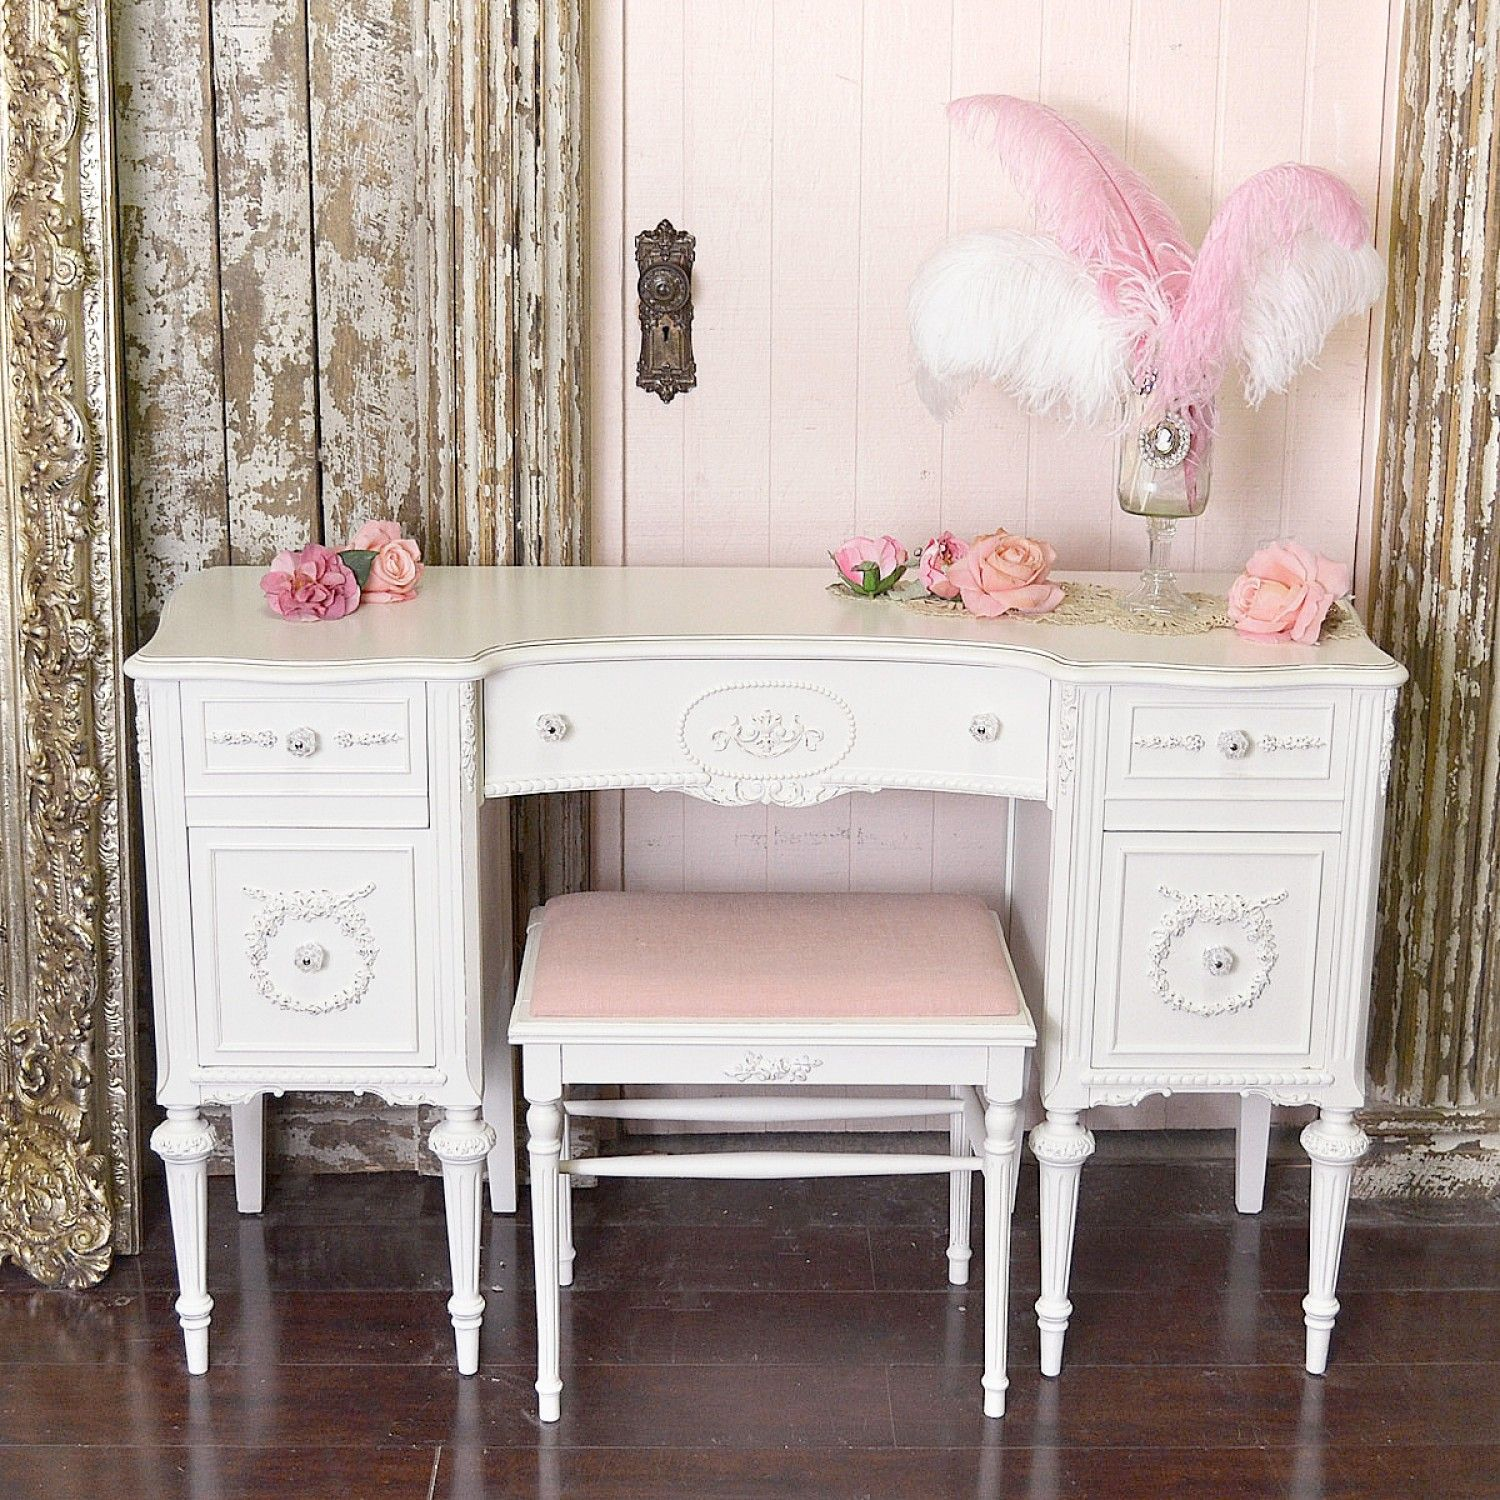 Vintage Vanity Desk from 1920s in White - Vintage Vanity Desk From 1920s In  White Shabby - White Antique Desks Antique Furniture